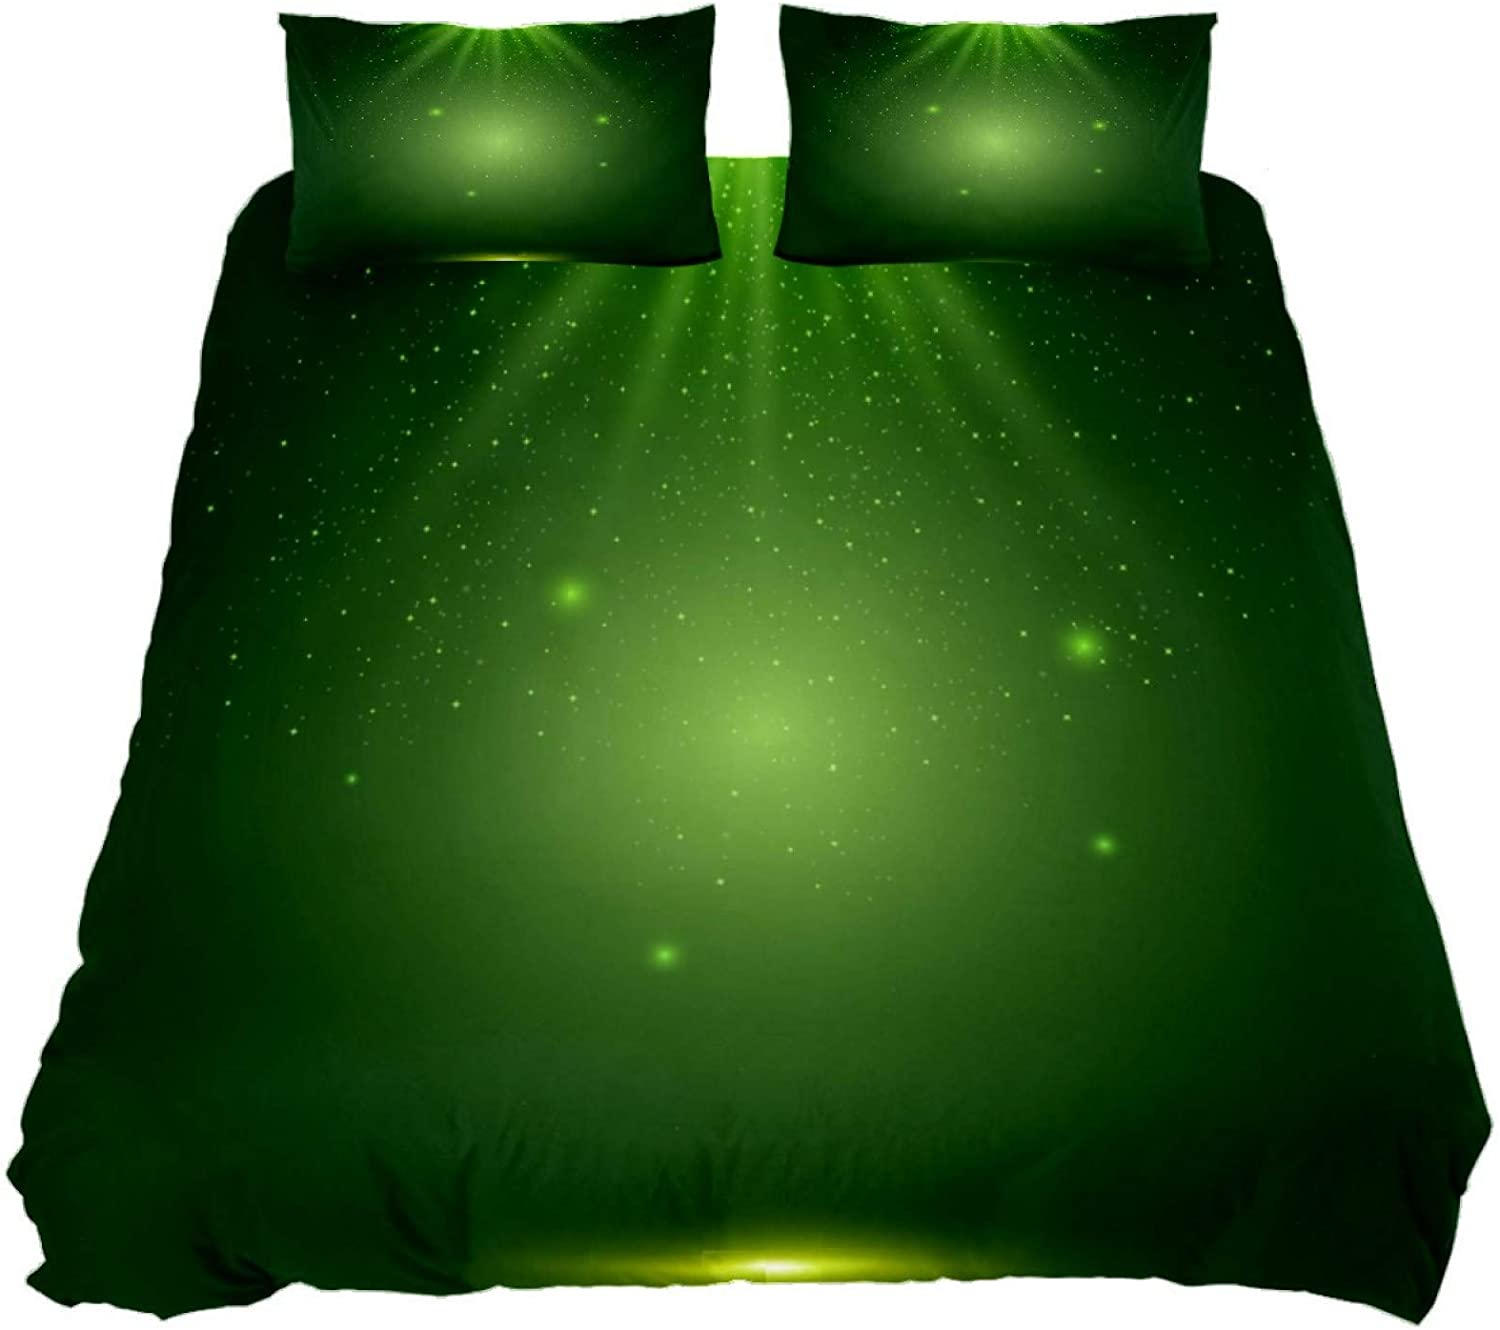 N\O Shiny St-Patricks Bedding Sets Breathable Bedclothes 3 Pieces Bedding Duvet Cover Sets (1 Duvet Cover + 2 Pillowcases) Room Decor Ultra Soft Microfiber(NO Comforter Included)